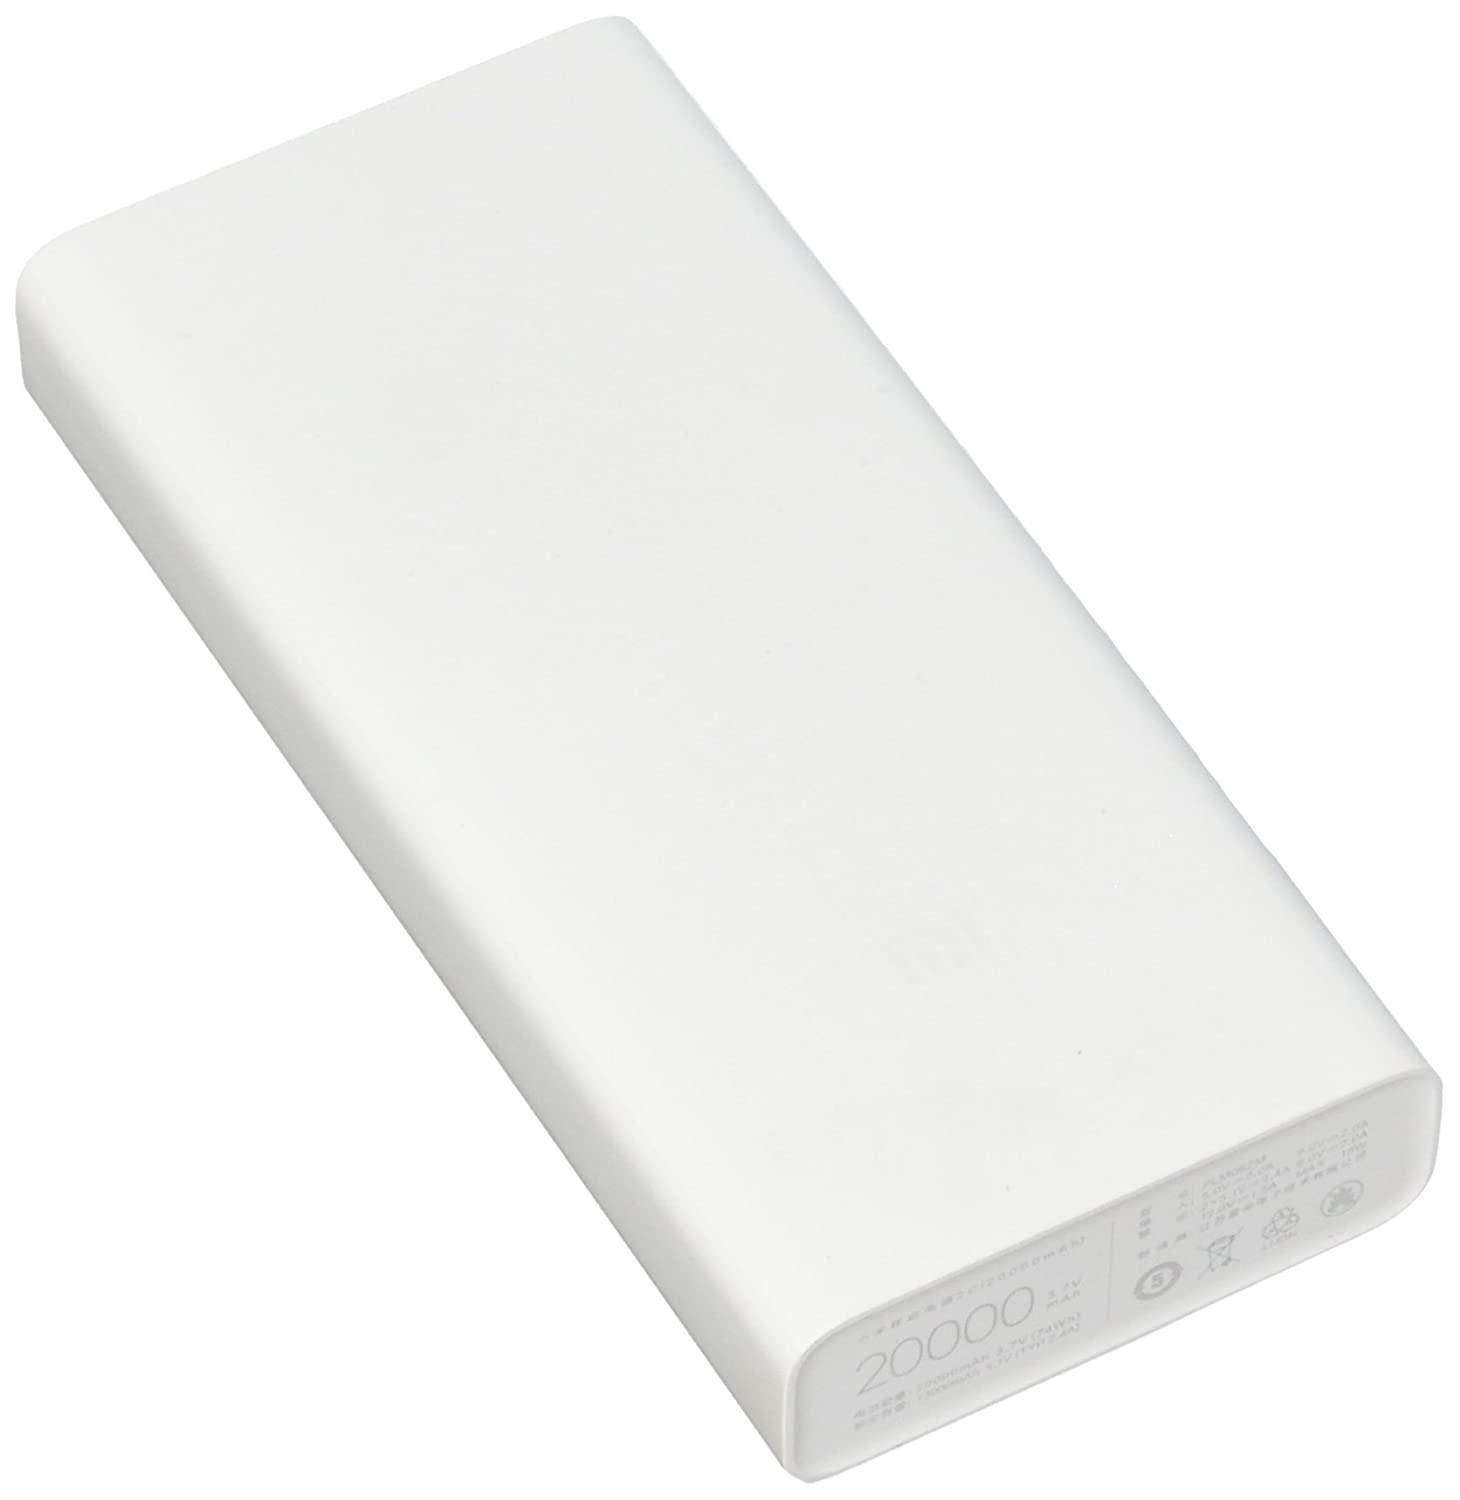 Amazon.com: Xiaomi Power Bank 20000mAh Dual USB Puerto ...